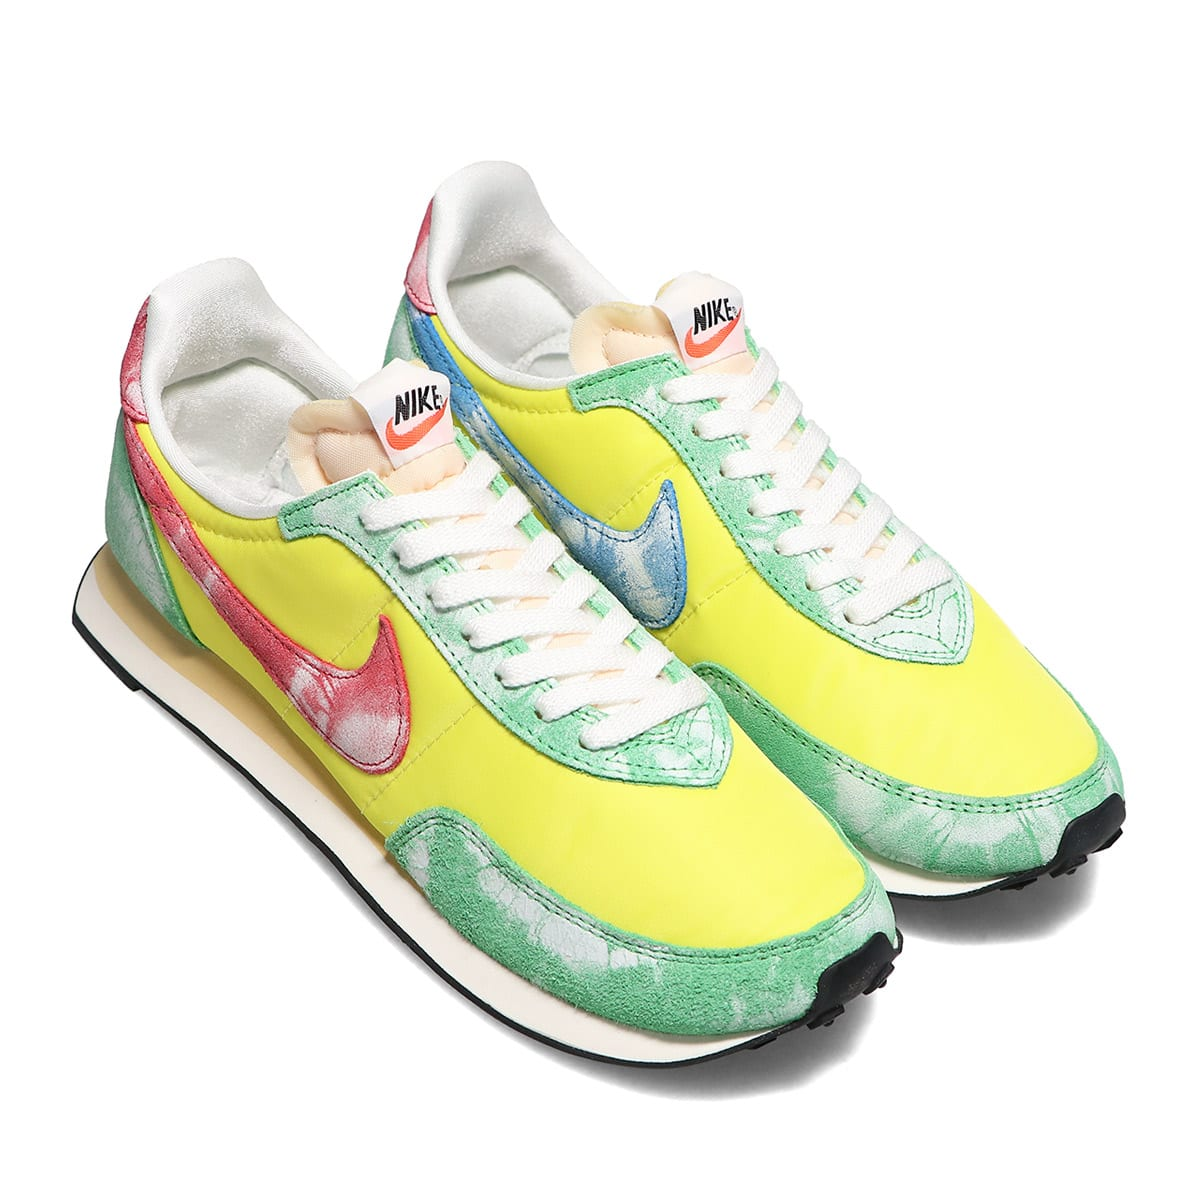 NIKE WAFFLE TRAINER 2 LT VOLTAGE YEL/FUSION RED-LT GREEN SPARK 21FA-I_photo_large